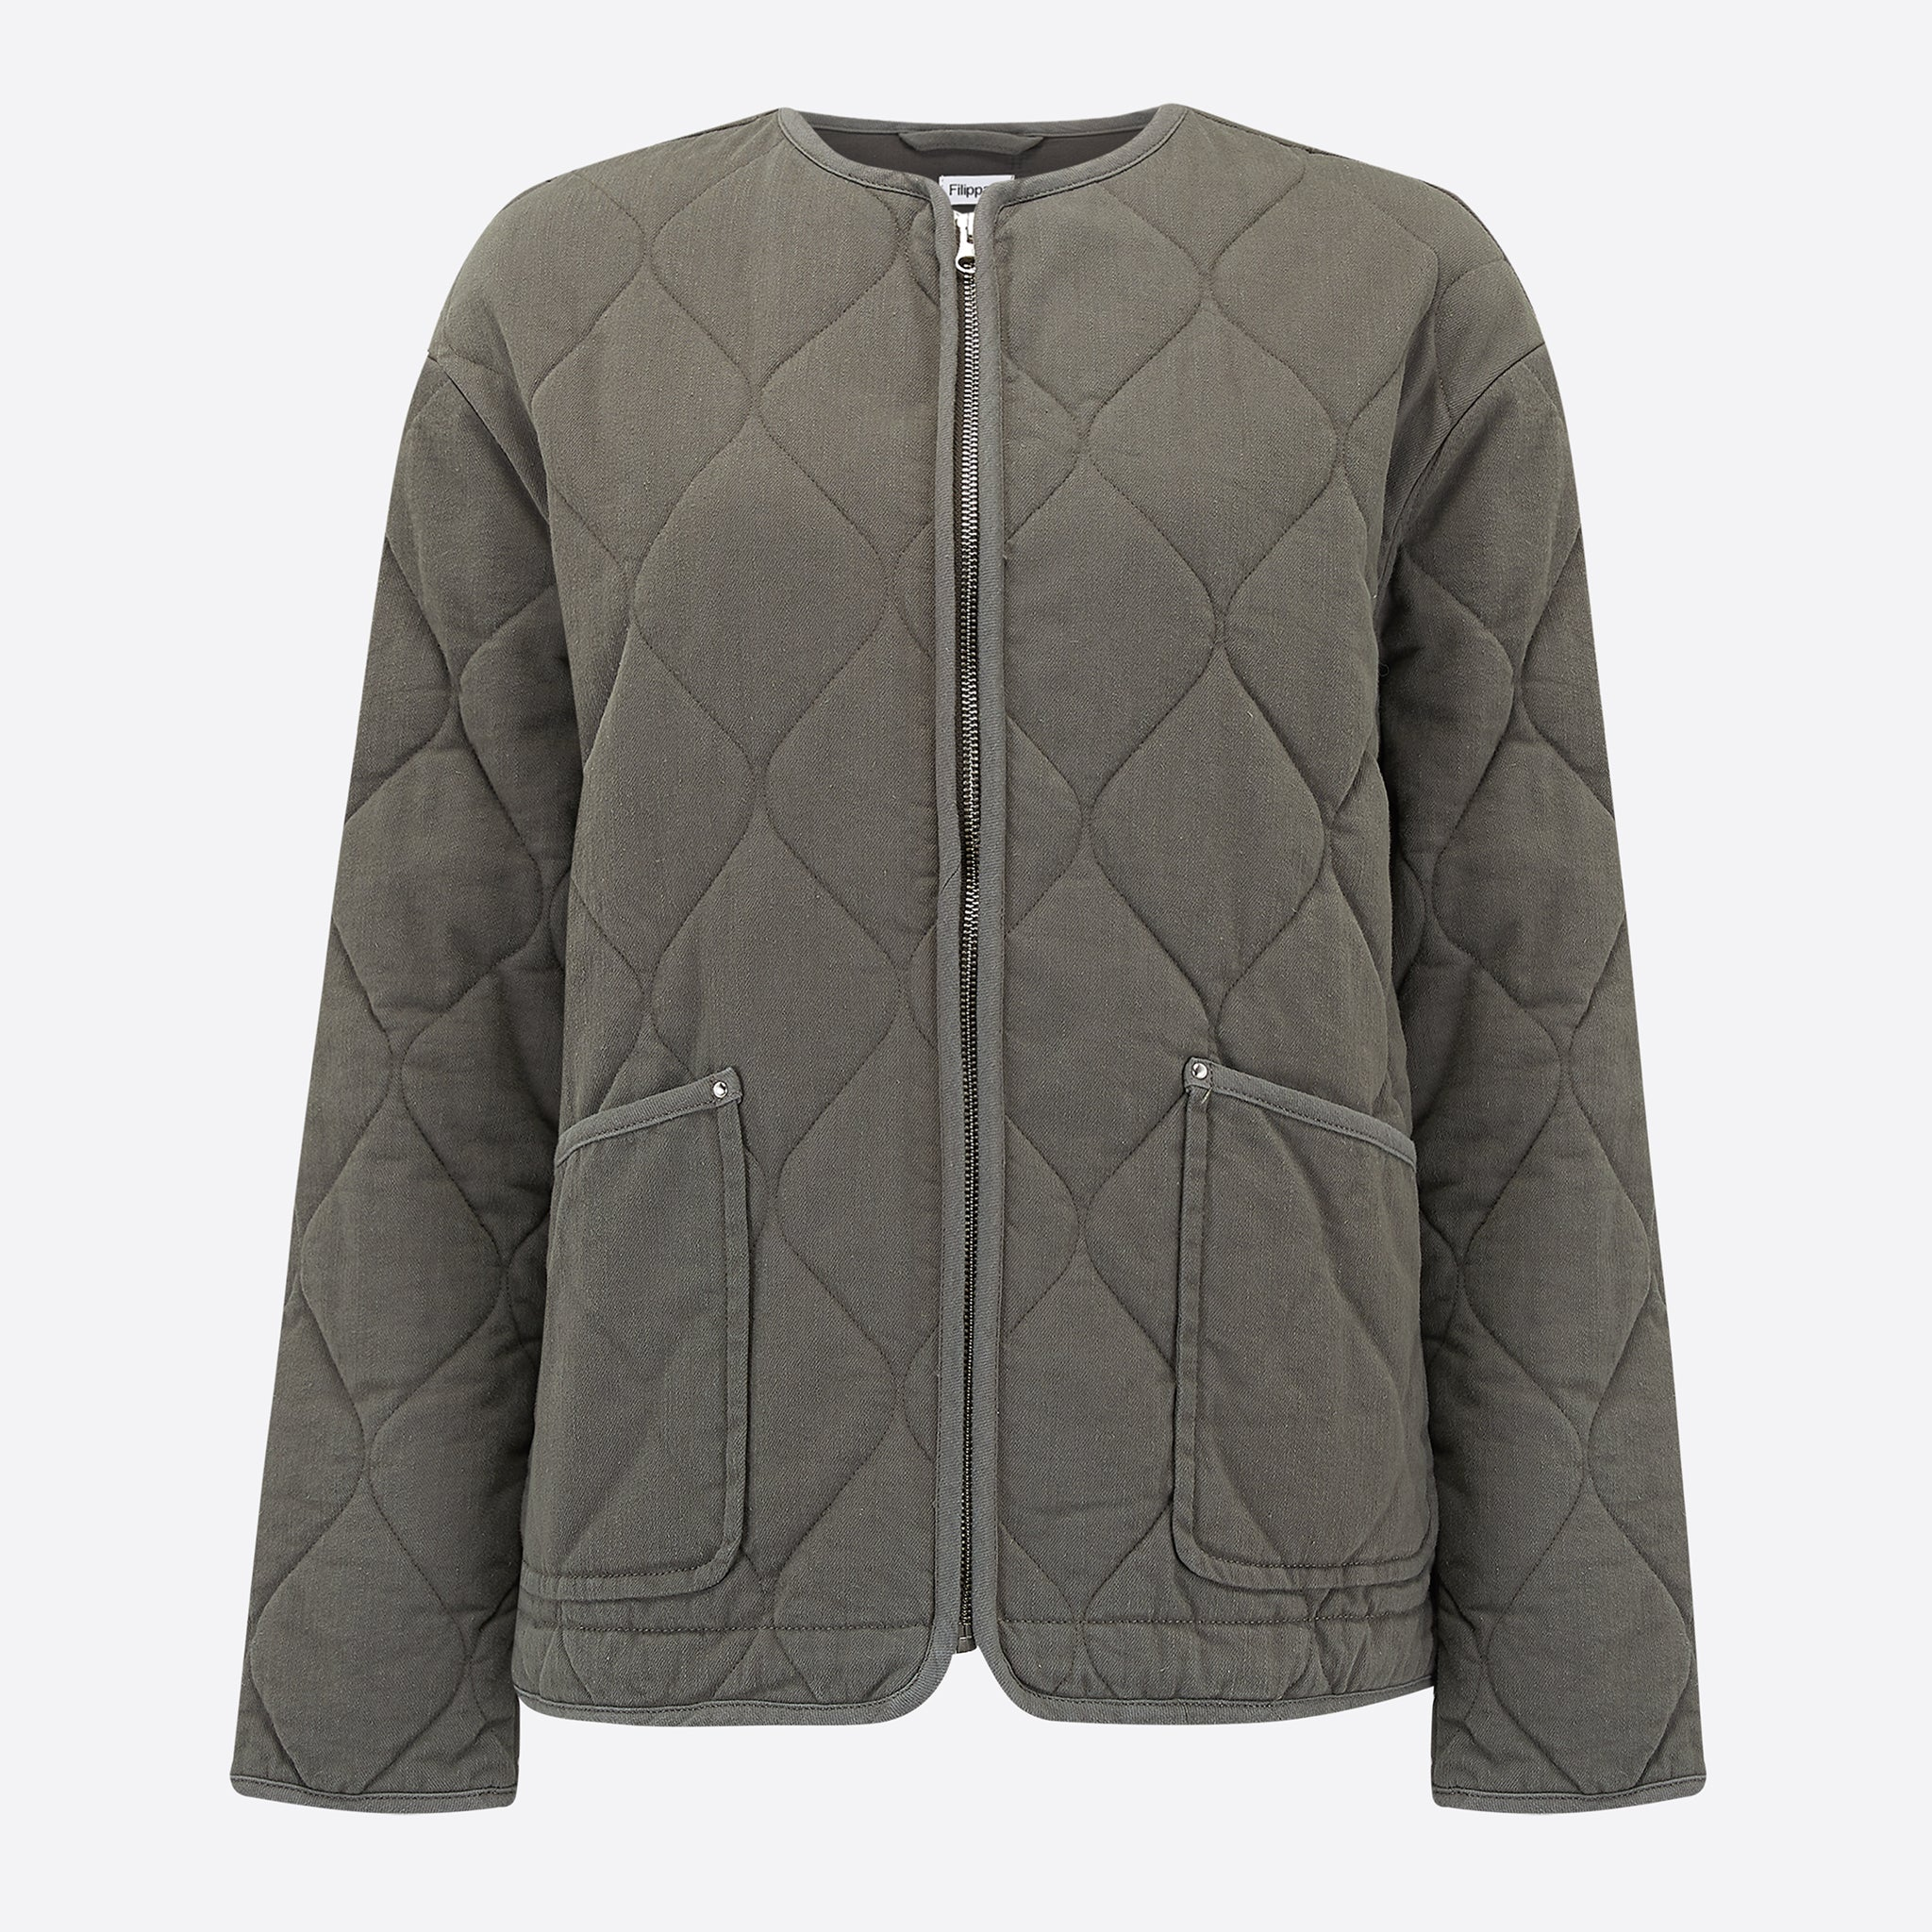 yarra brown jacket quilted trail quilt shirt